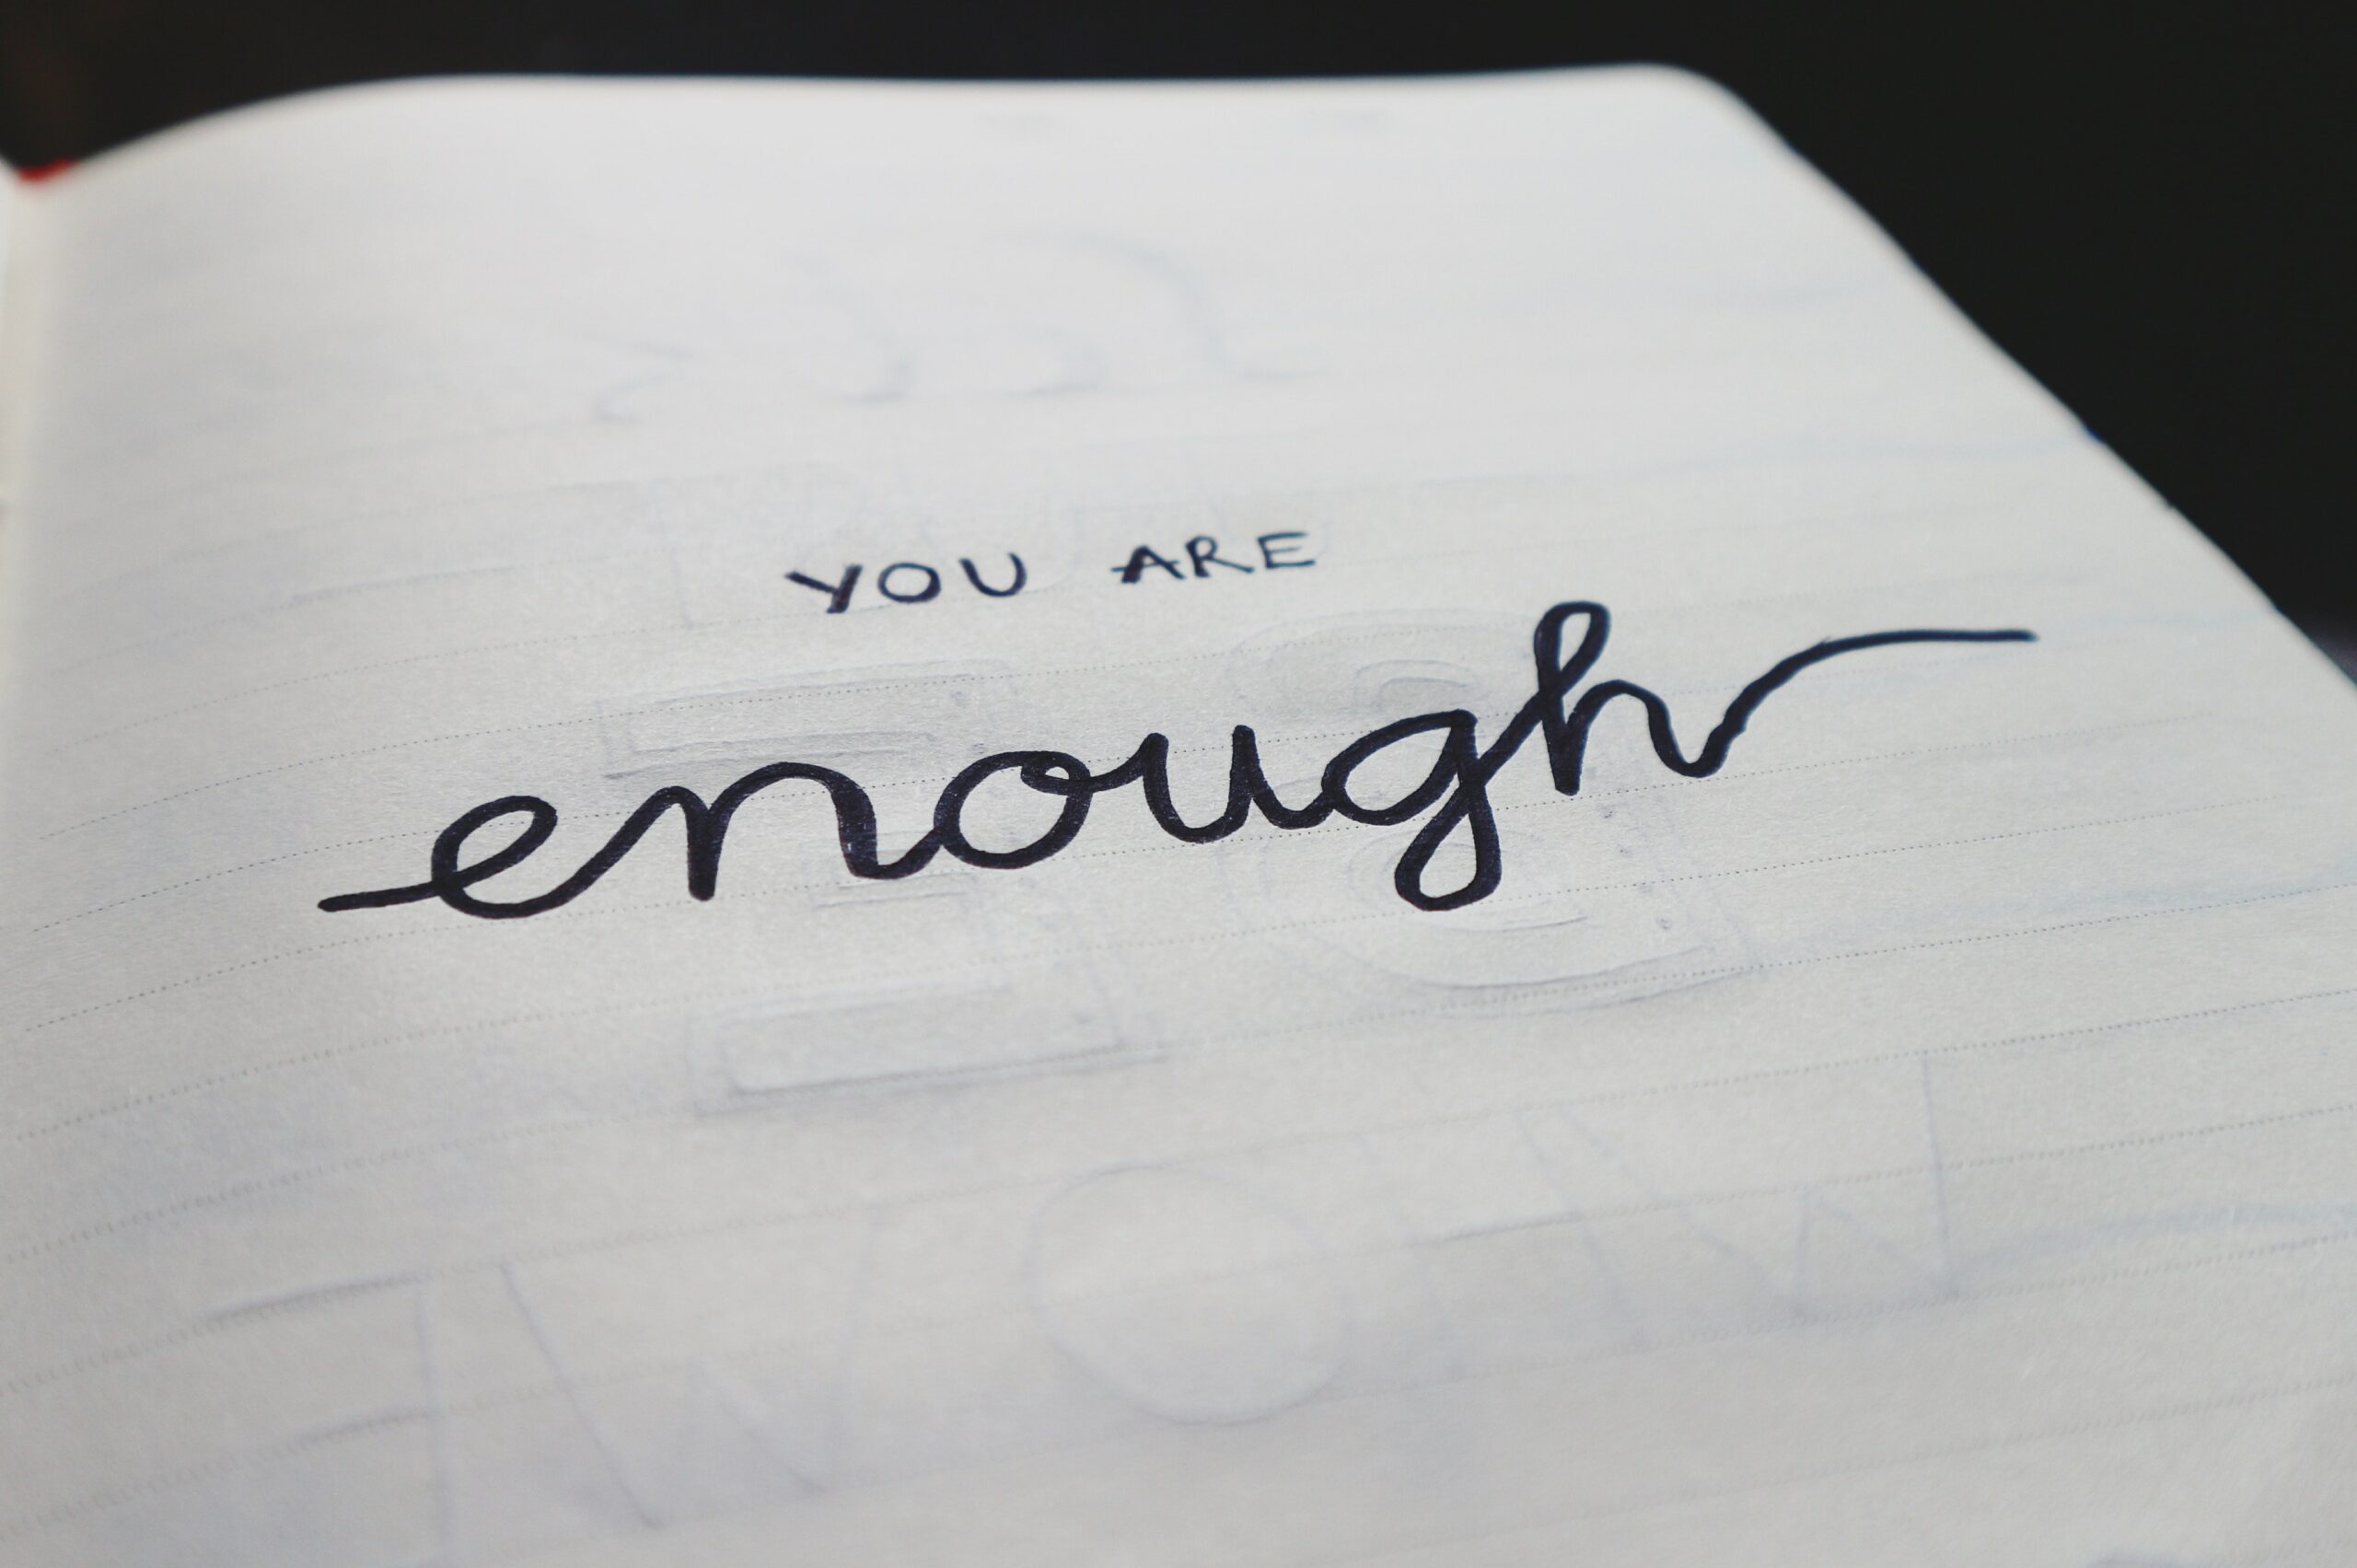 you-are-enough-text-669988